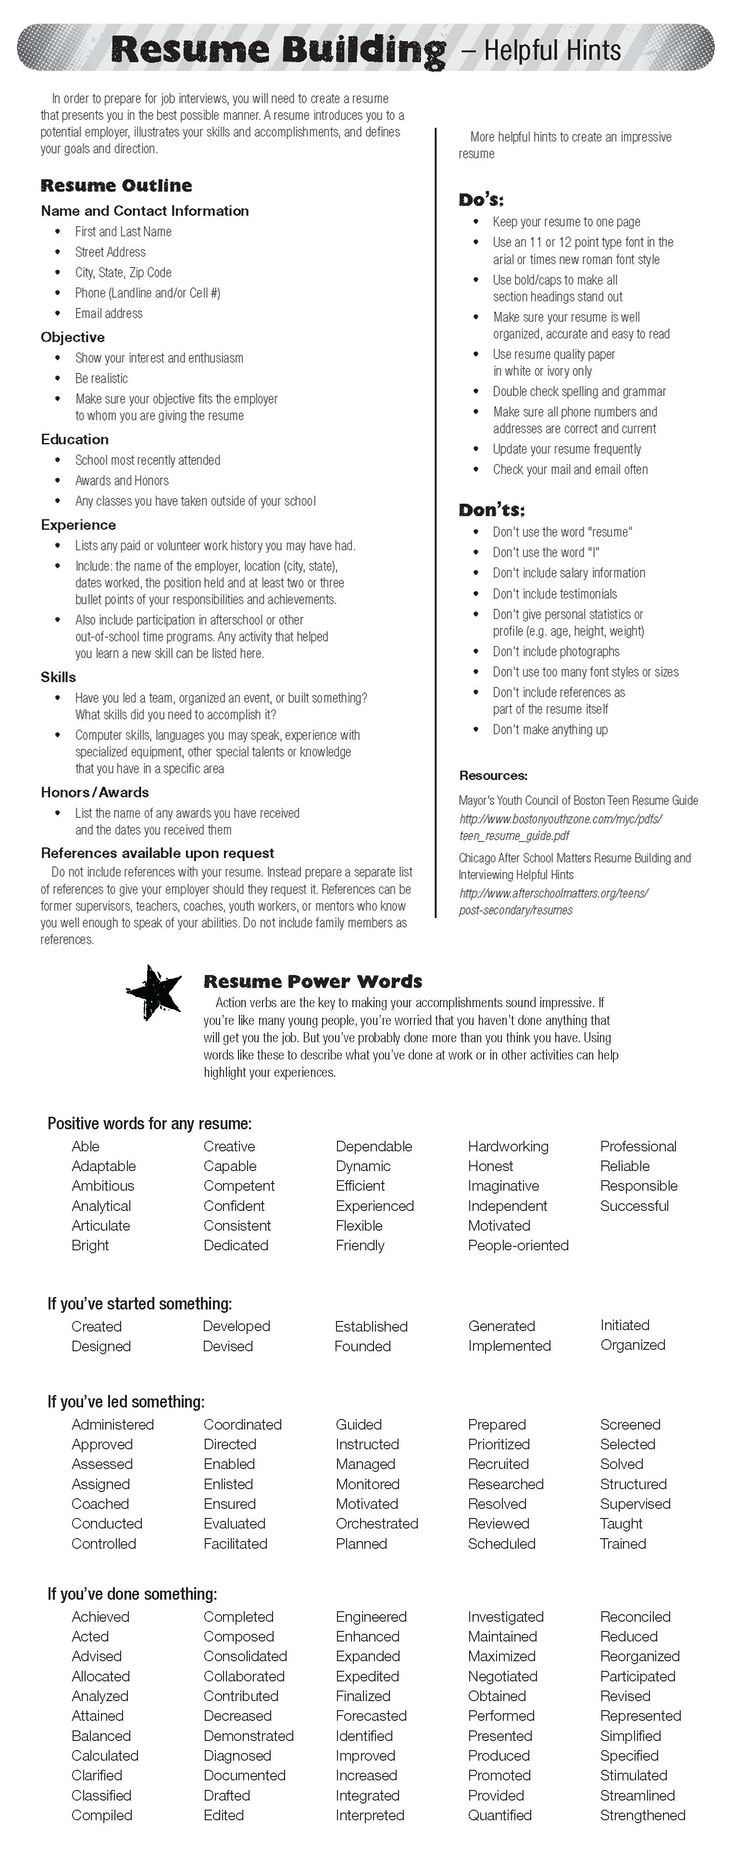 Opposenewapstandardsus  Ravishing  Ideas About Resume On Pinterest  Cv Format Resume Cv And  With Foxy  Ideas About Resume On Pinterest  Cv Format Resume Cv And Resume Templates With Cute Resumes Indeed Also Resume Bilingual In Addition Grant Writing Resume And Creating A Great Resume As Well As Esthetician Resume Examples Additionally Cv Resume Difference From Pinterestcom With Opposenewapstandardsus  Foxy  Ideas About Resume On Pinterest  Cv Format Resume Cv And  With Cute  Ideas About Resume On Pinterest  Cv Format Resume Cv And Resume Templates And Ravishing Resumes Indeed Also Resume Bilingual In Addition Grant Writing Resume From Pinterestcom